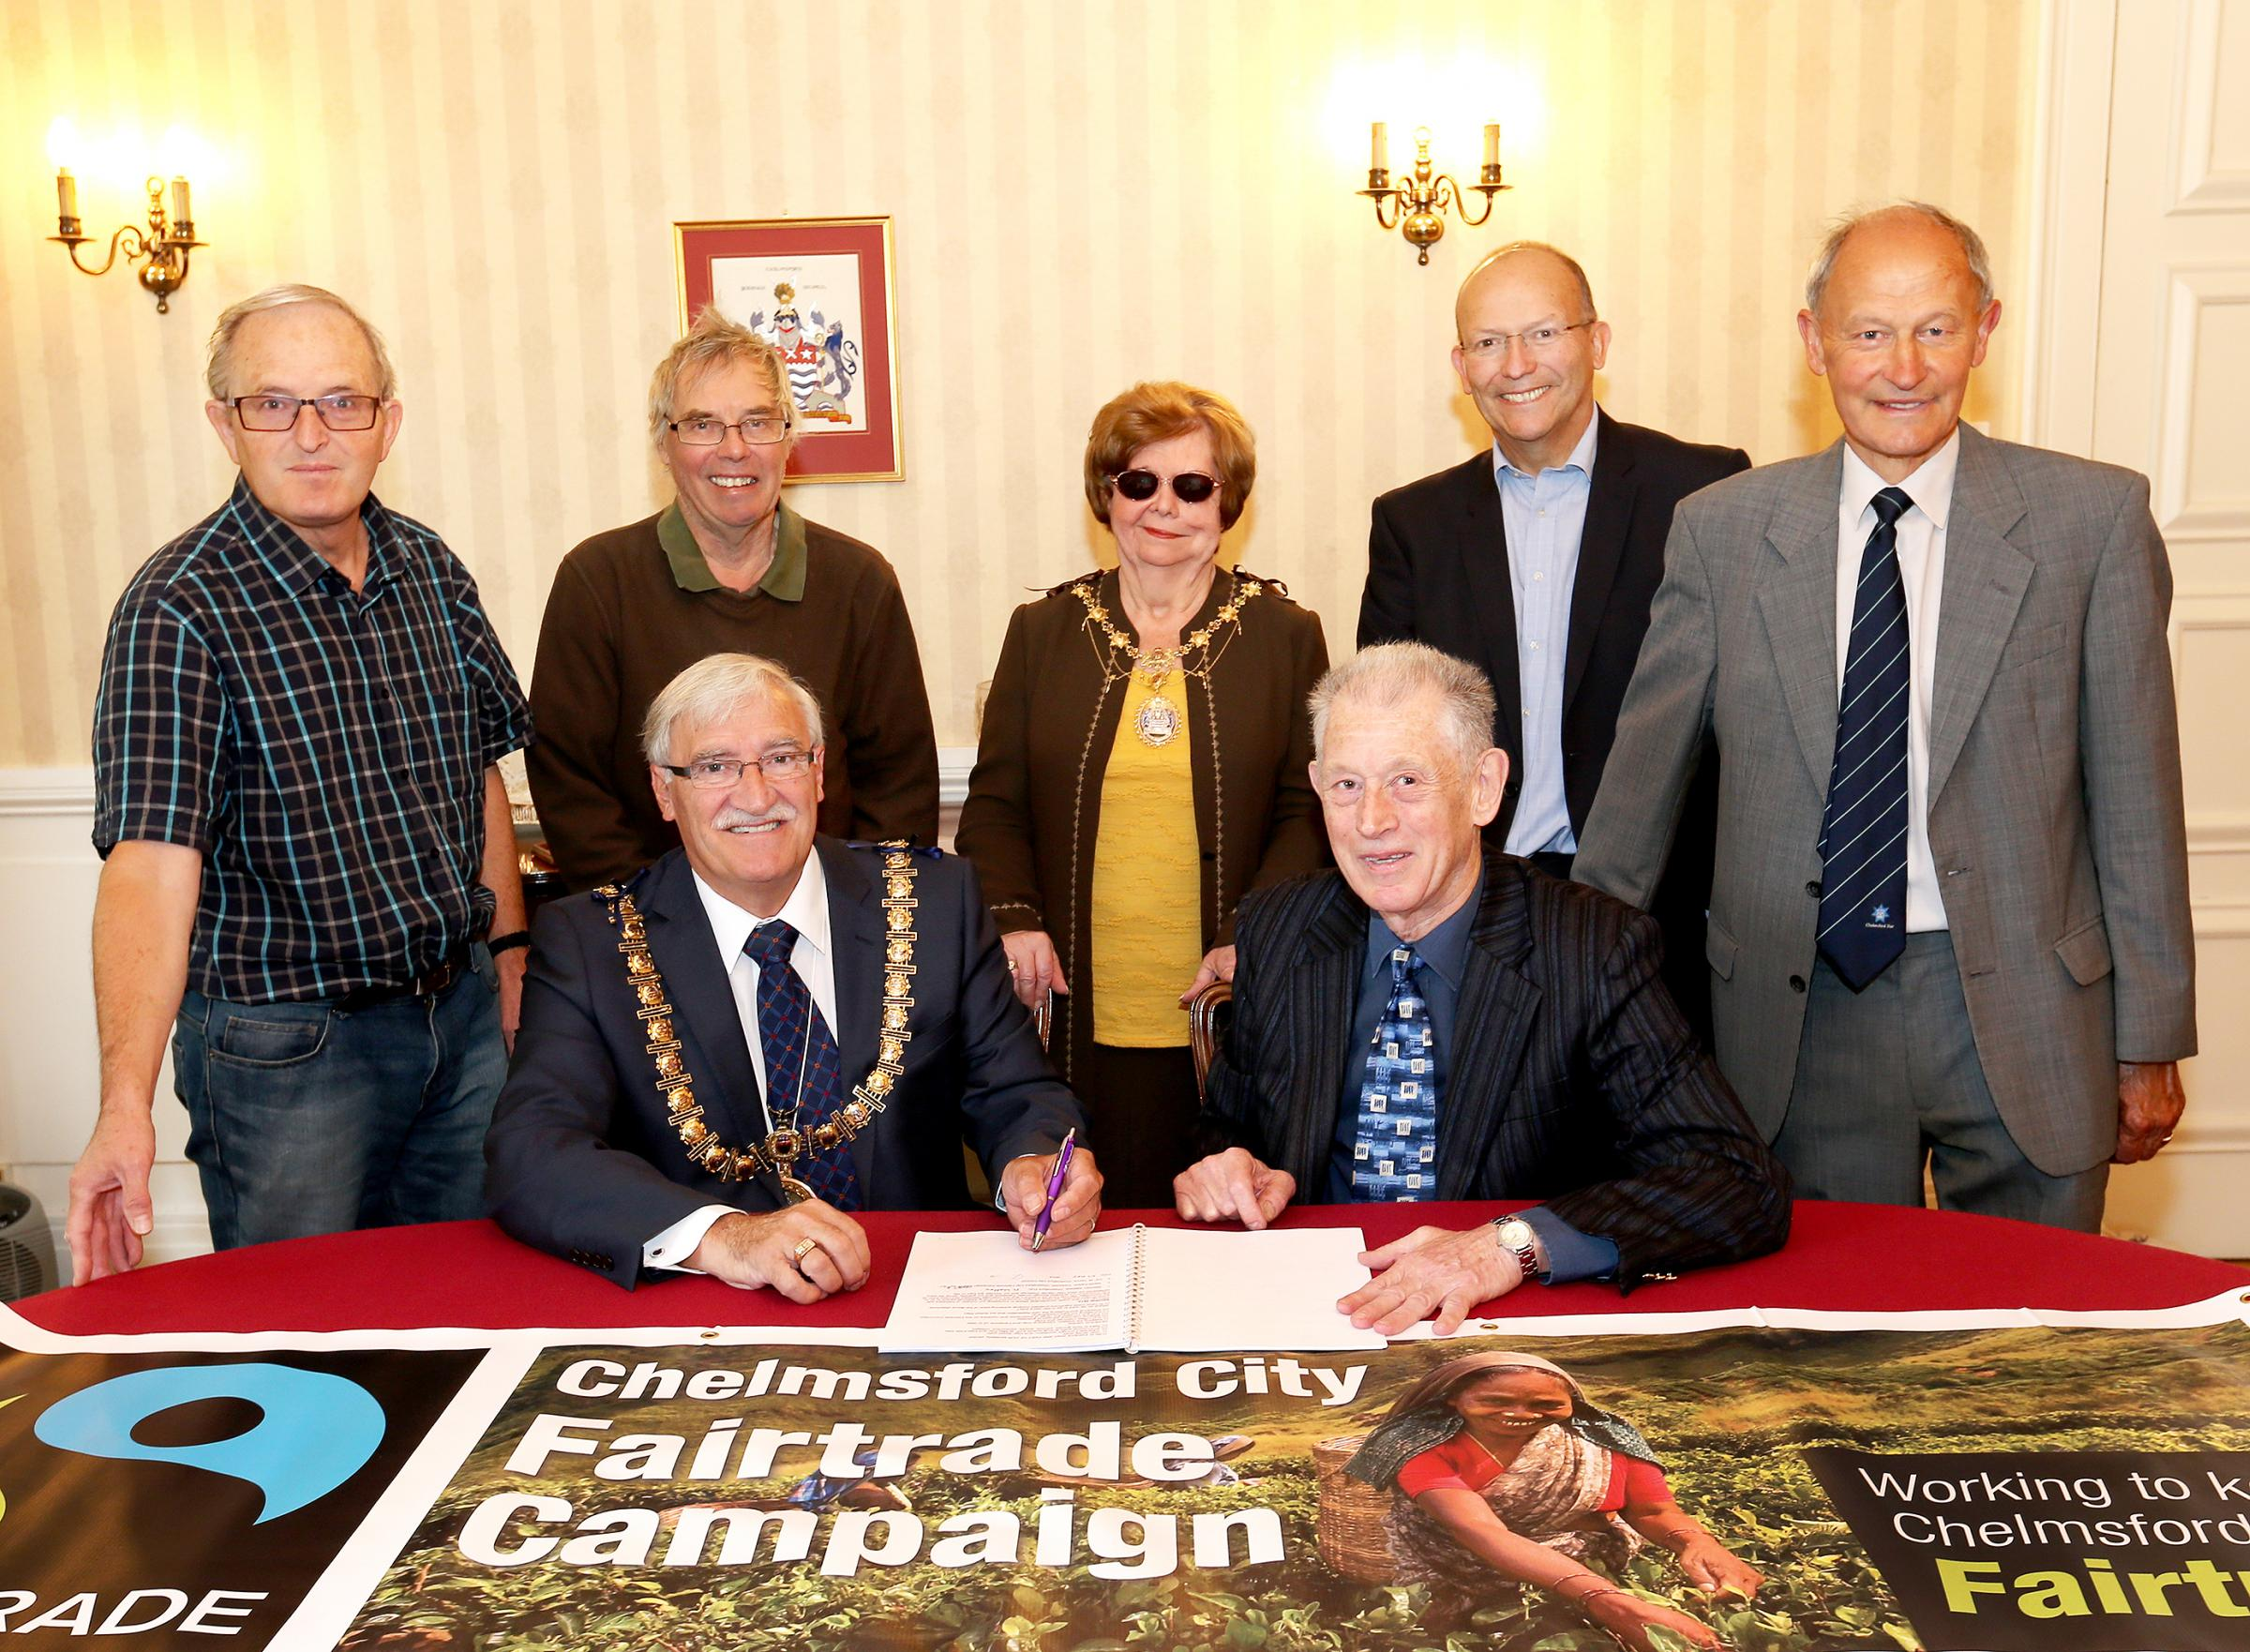 Fairtrade: Back row (l-r) Tony Bender, David Parker, Mayoress of Chelmsford, Steve Packham and Micheal Whalley. Front row (l-r) Mayor of Chelmsford and Malcolm Wallace